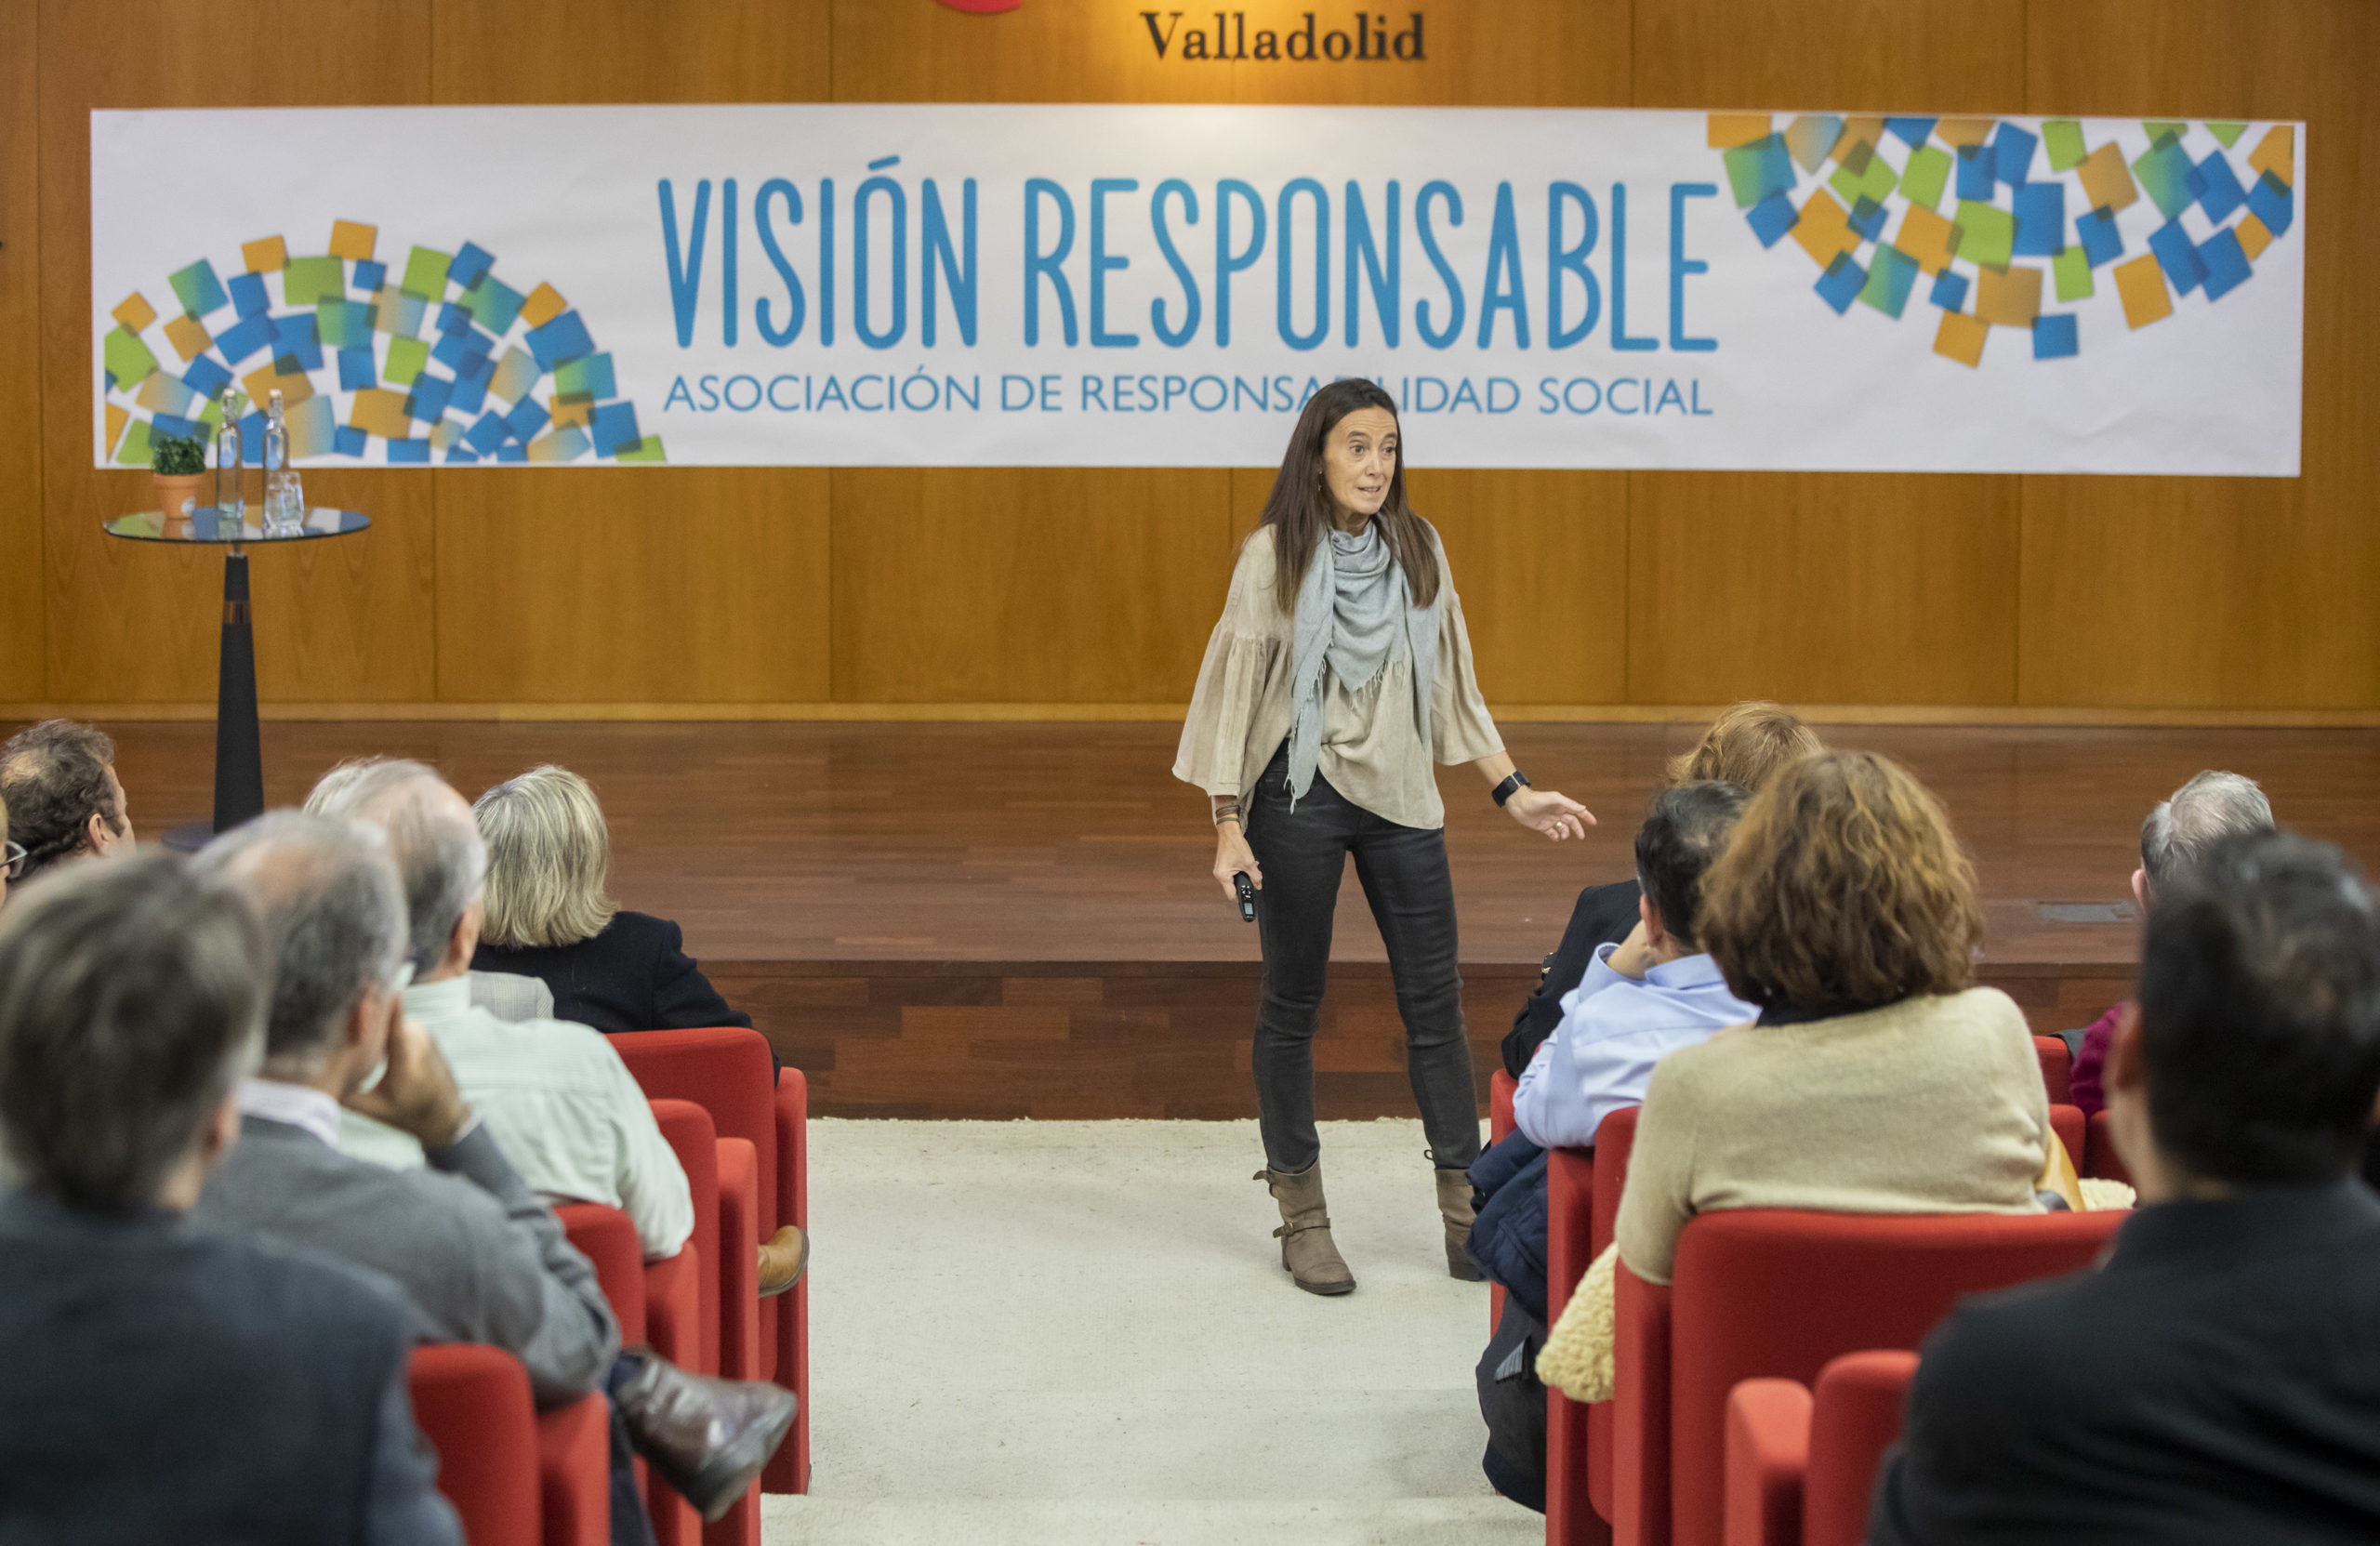 vision_responsable-0038